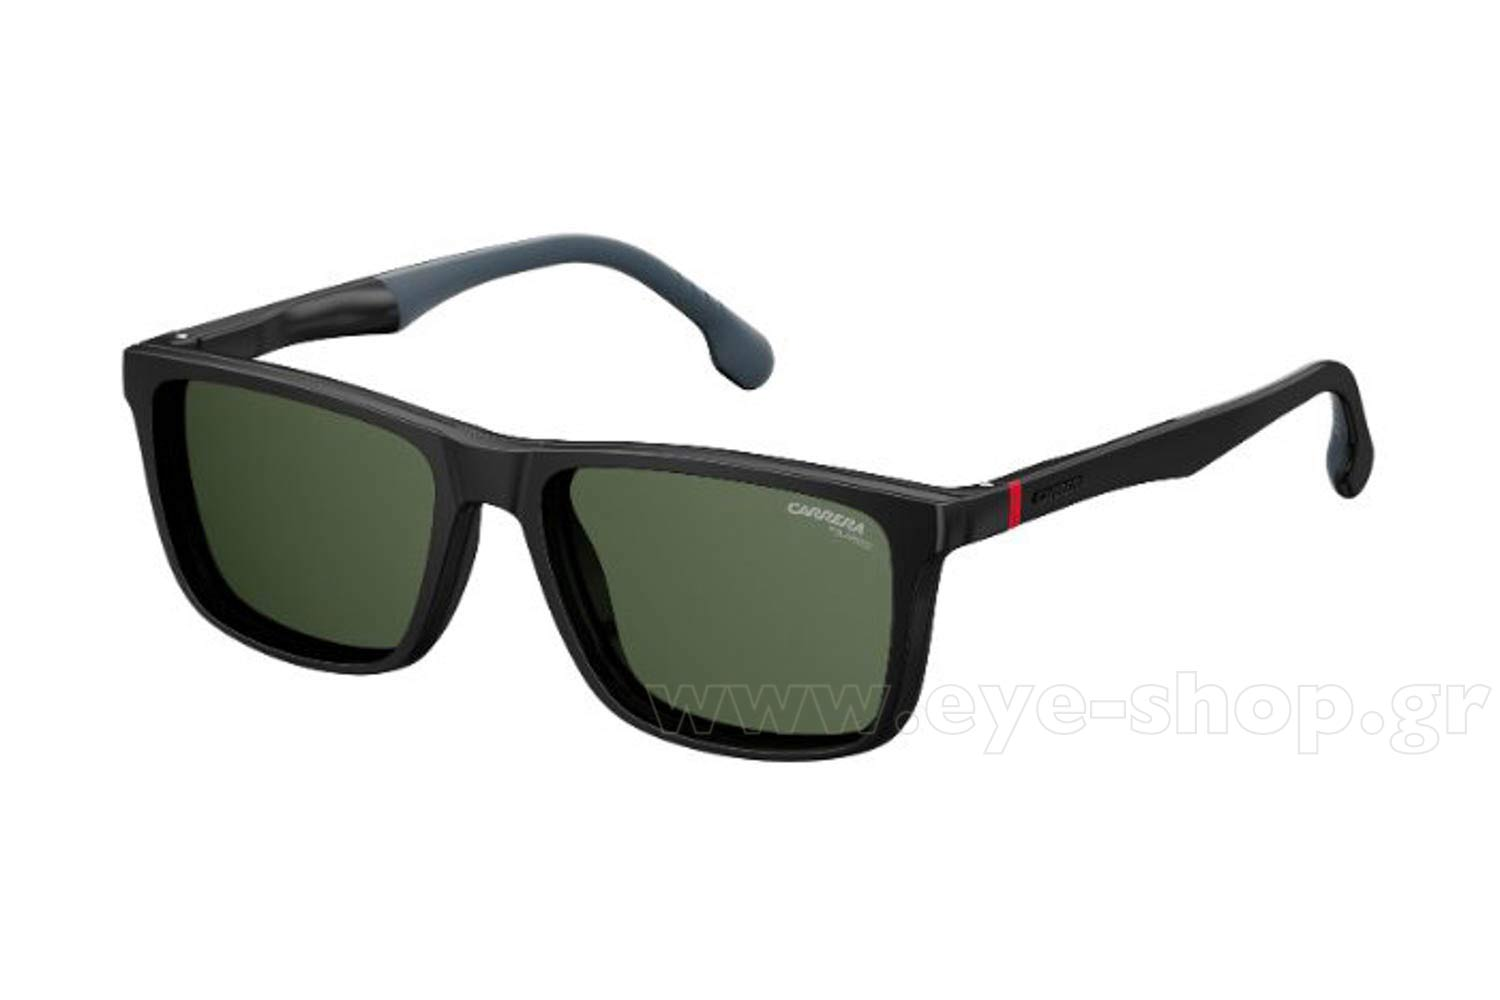 Carrera μοντέλο CARRERA 4009 CS στο χρώμα 0807 (UC) magnetic clipon sunglasses